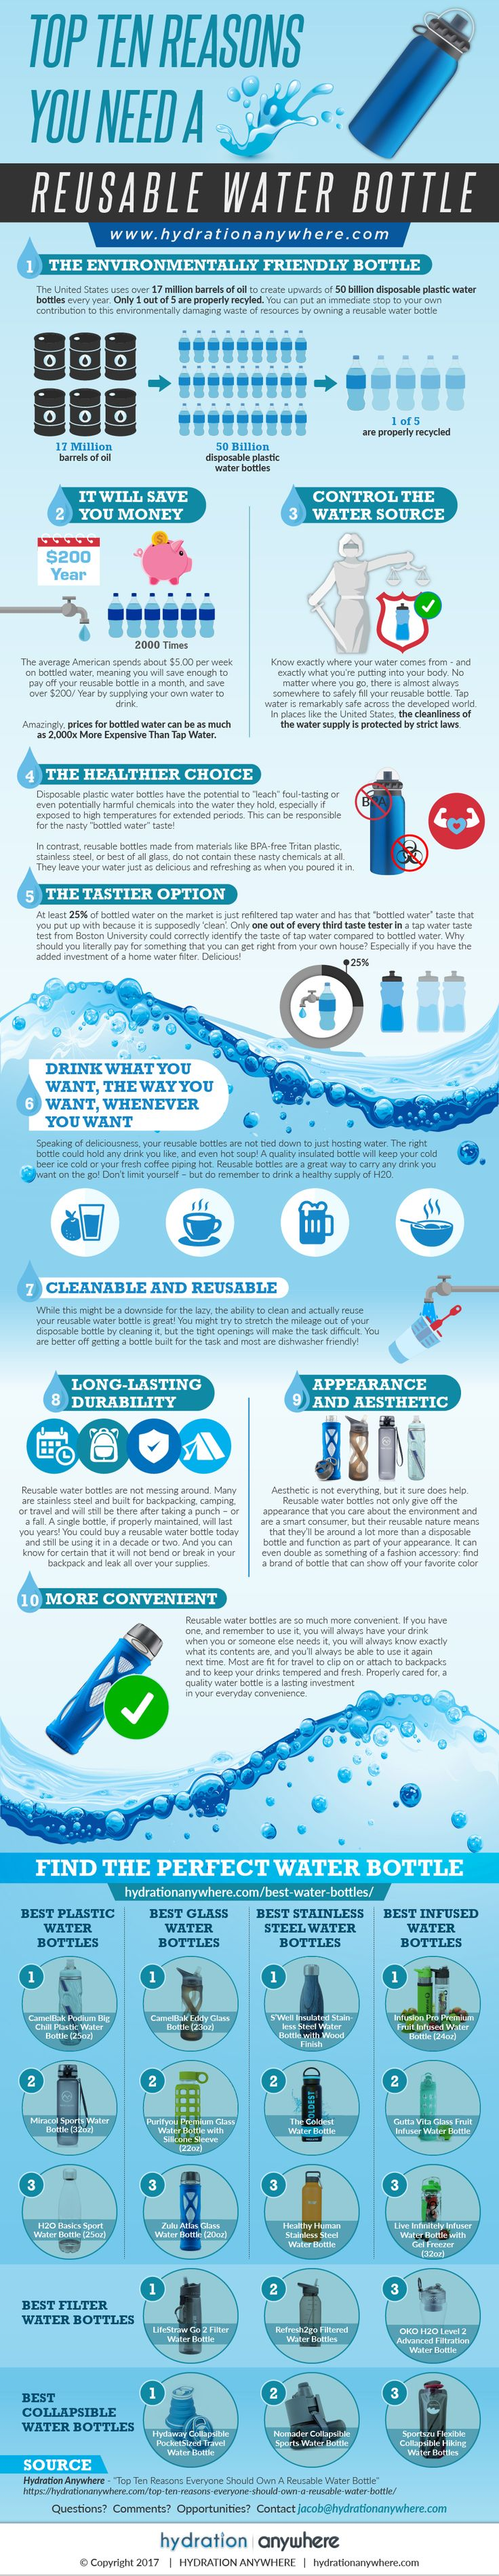 10 Reasons To Use A Reusable Water Bottle Infographic